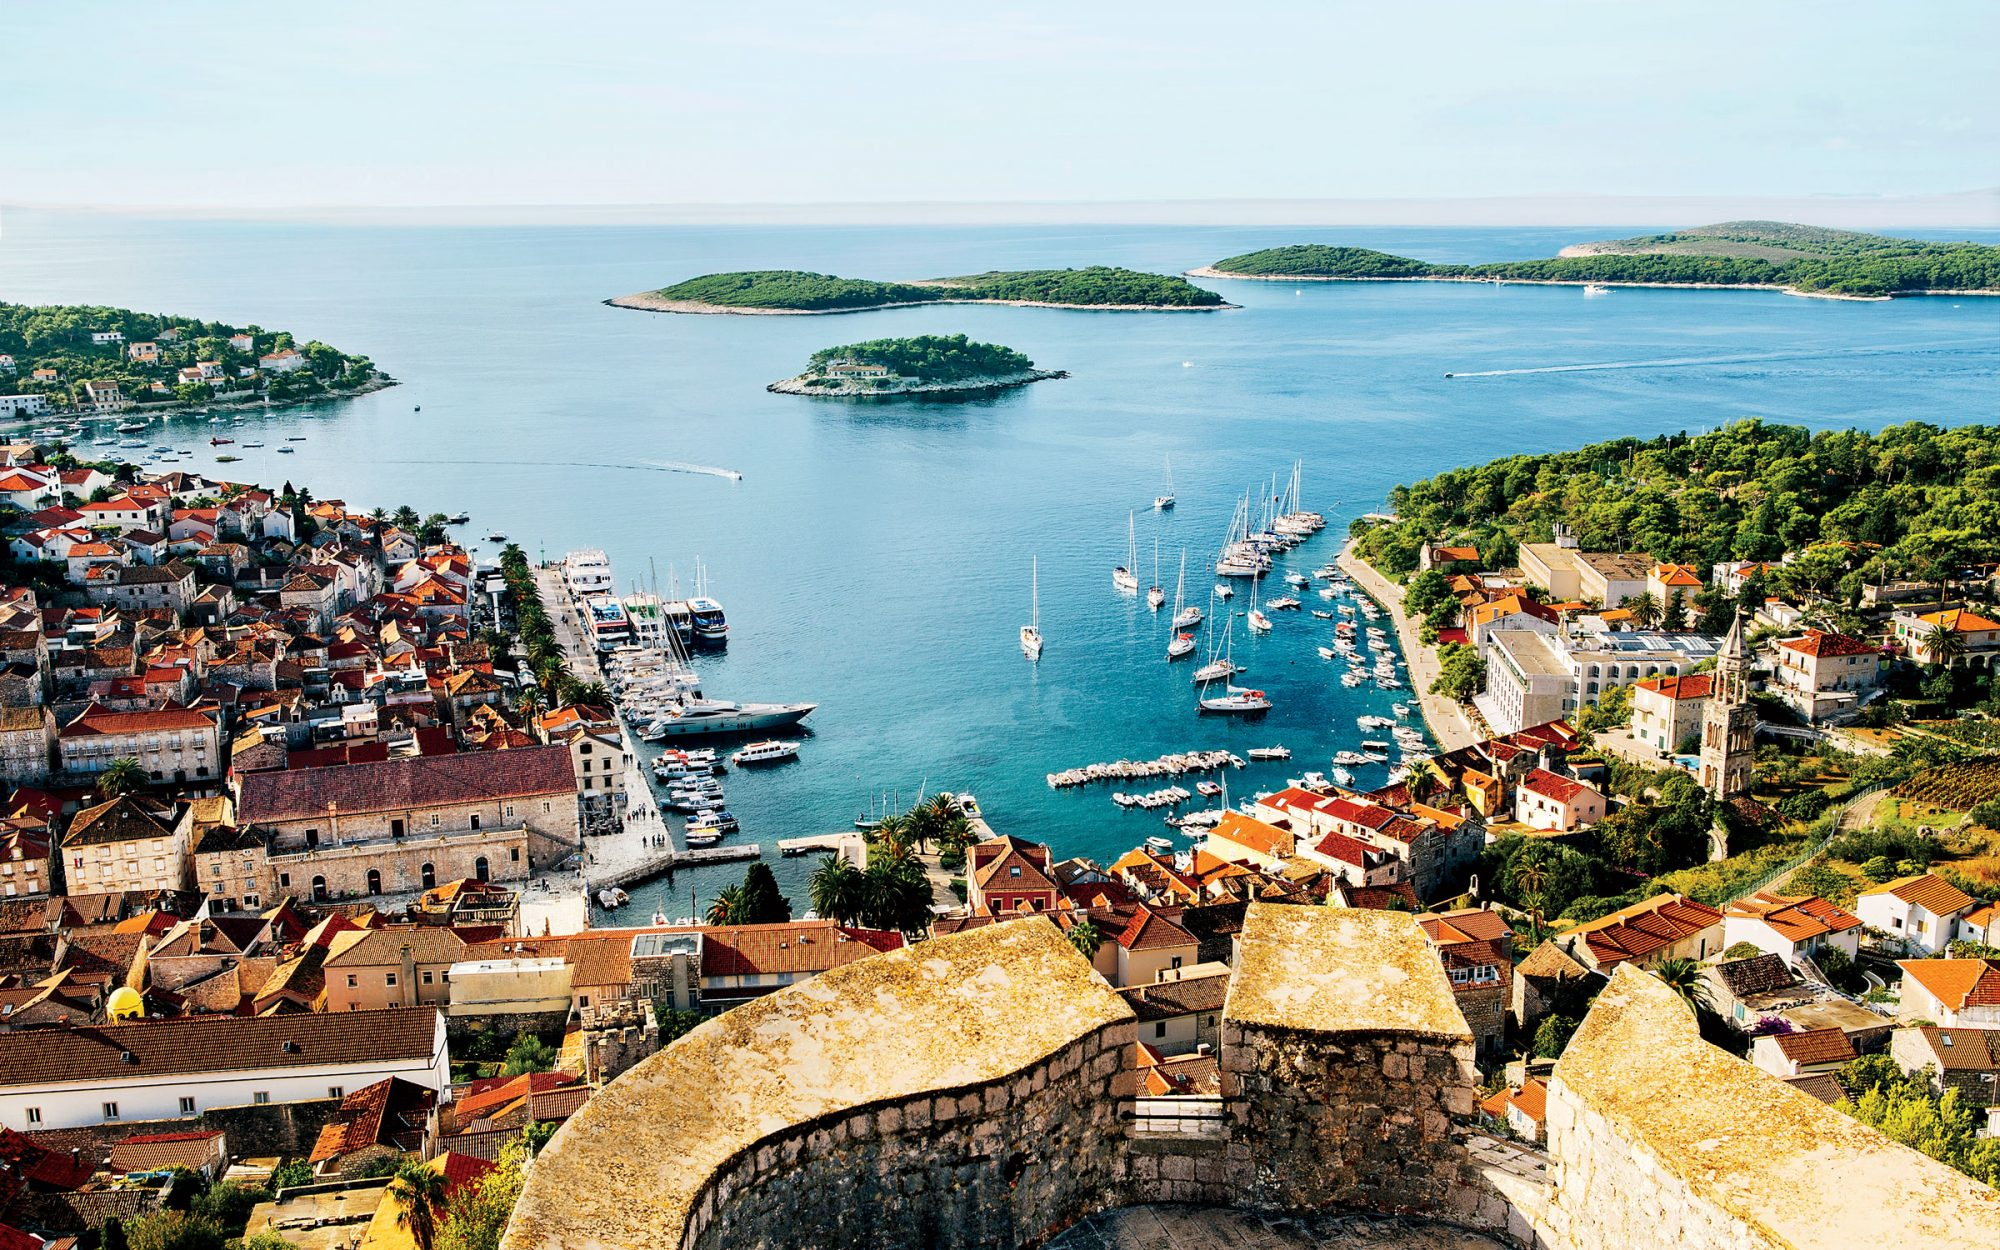 Croatia's Dalmatian Islands